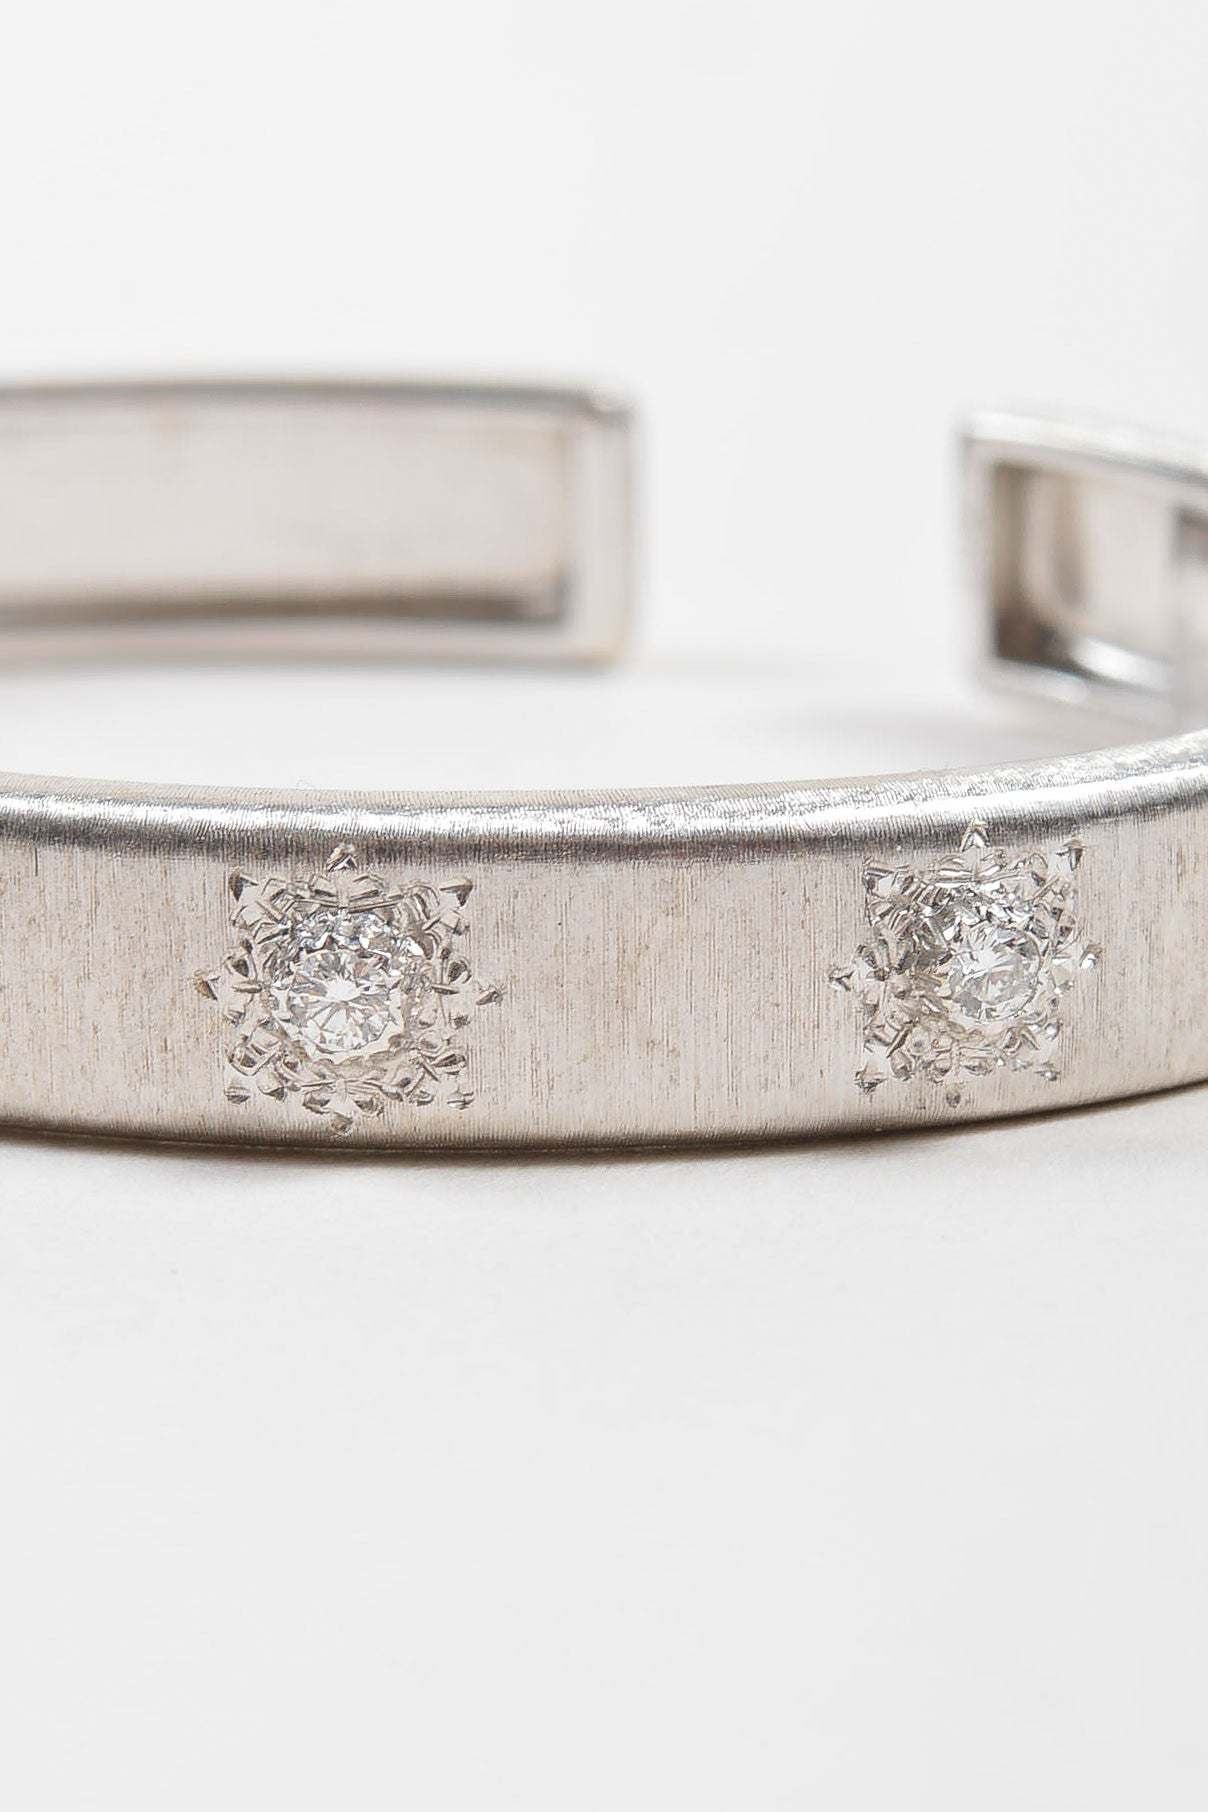 "18K White Gold and Diamond Station Small Buccellati 18K White Gold Diamond Station Small ""Classica"" Cuff Bracelet ""Classica"" Cuff Bracelet Detail"